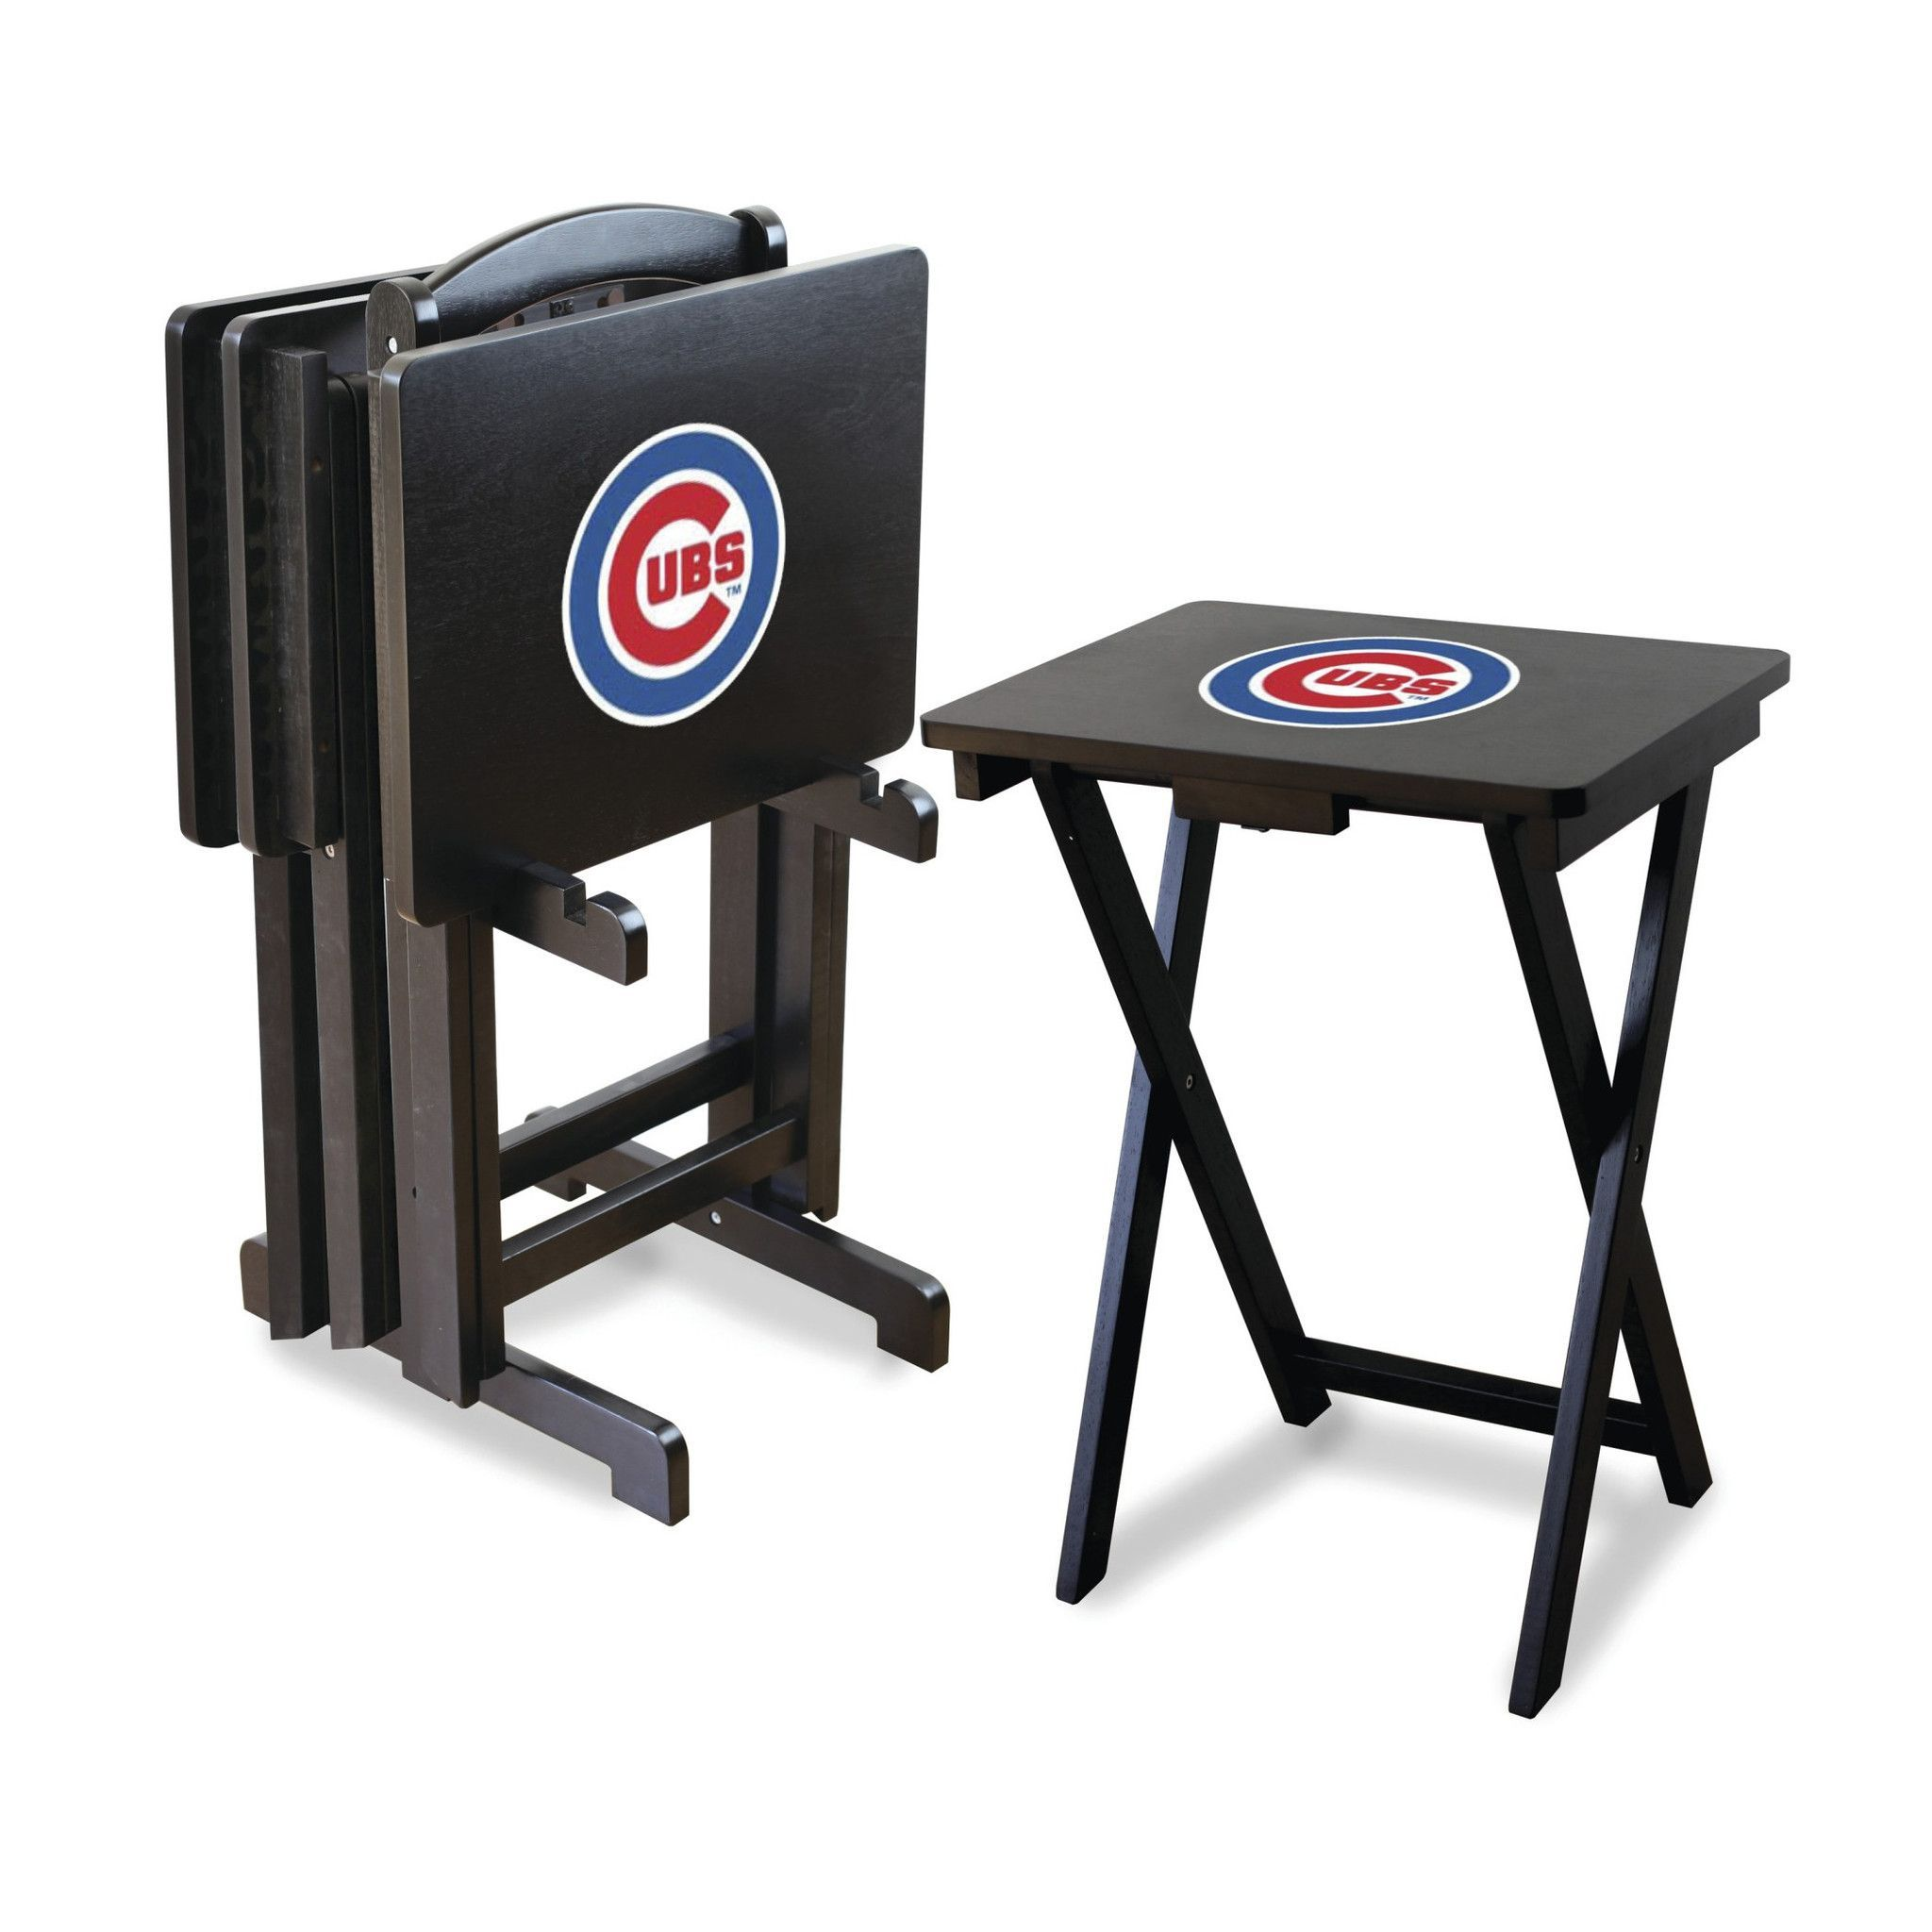 Chicago Cubs TV Trays With Stand Are Great For Extra Tailgating Table Space